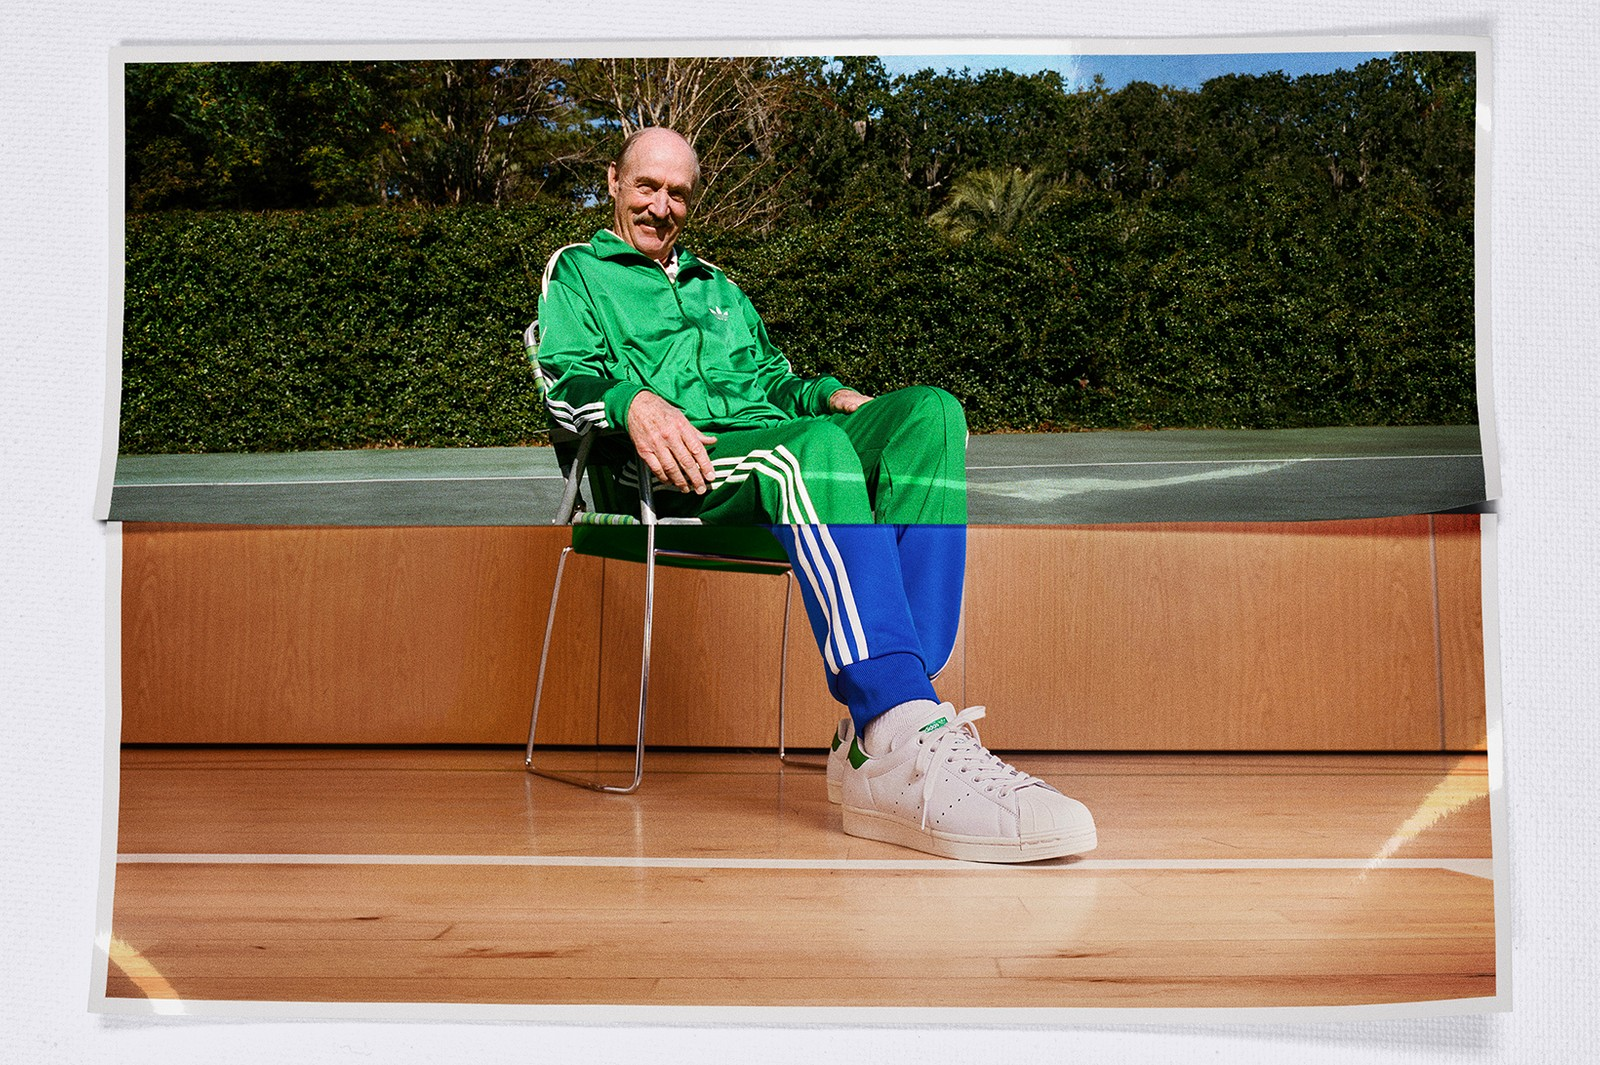 adidas Originals Superstan Superstar Stan Smith Release Sneaker Florida tennis pro athlete sneakers shoes footwear video